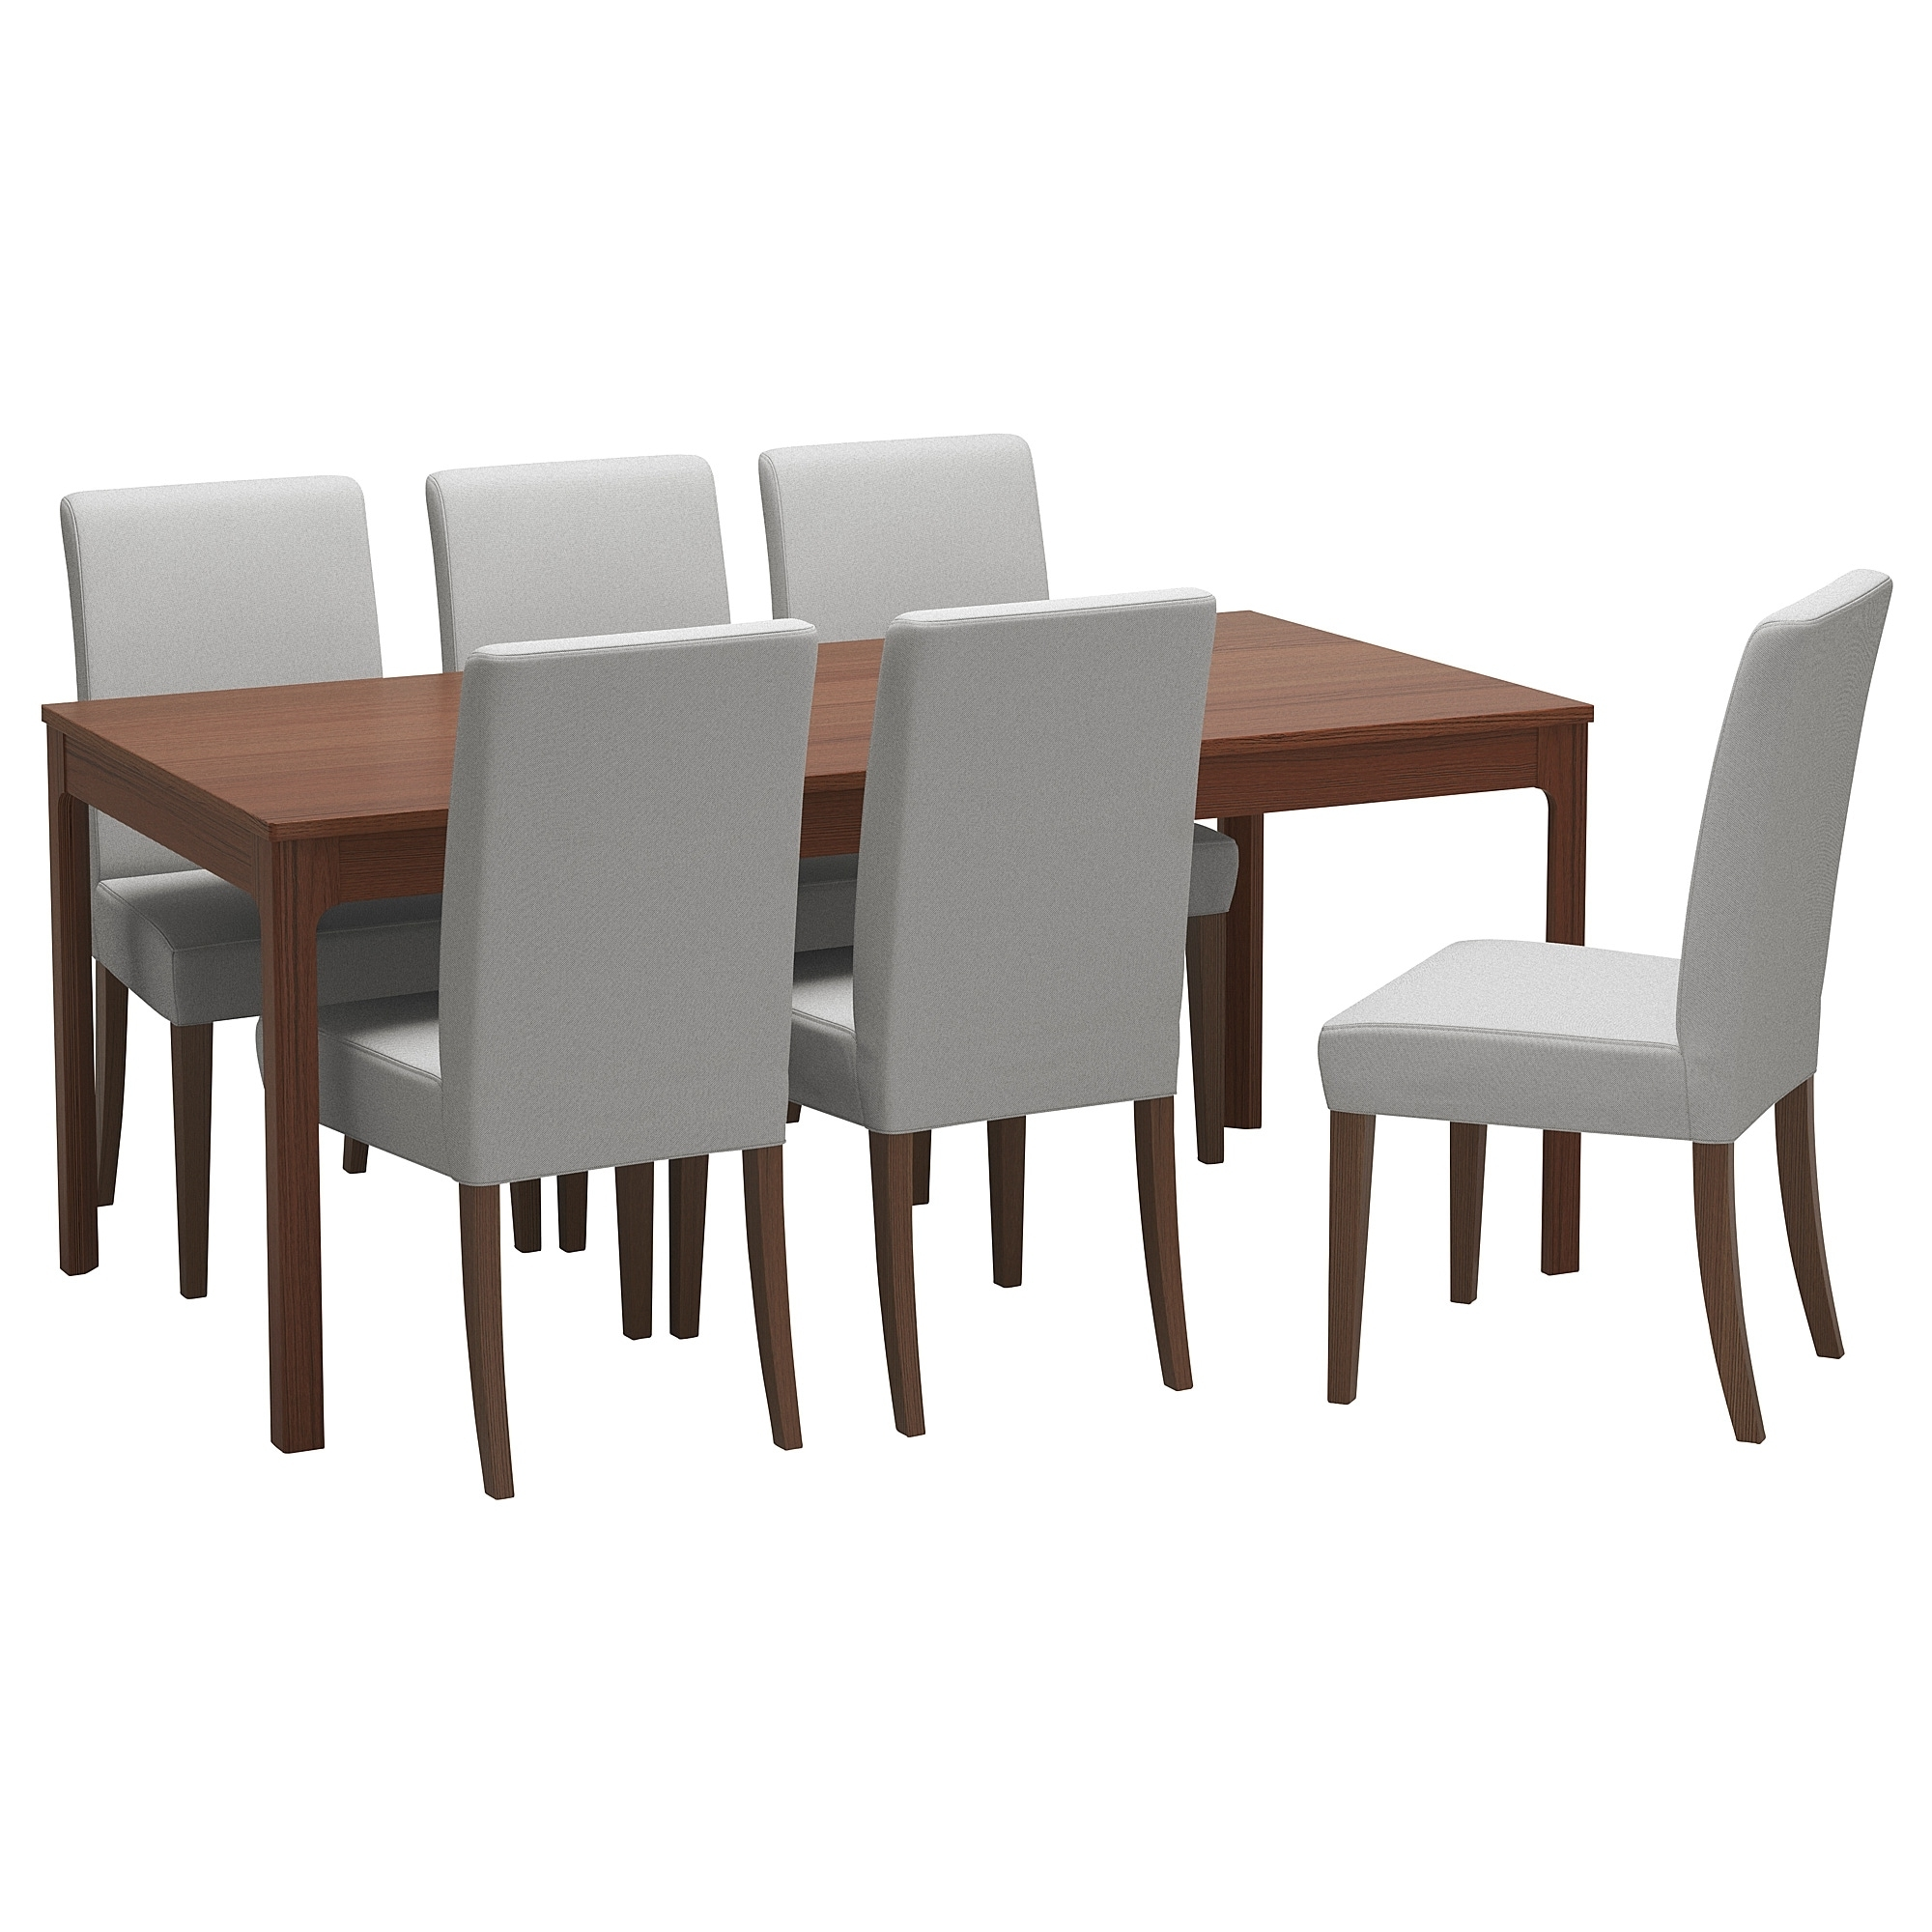 Popular 6 Seater Dining Table & Chairs (View 19 of 25)